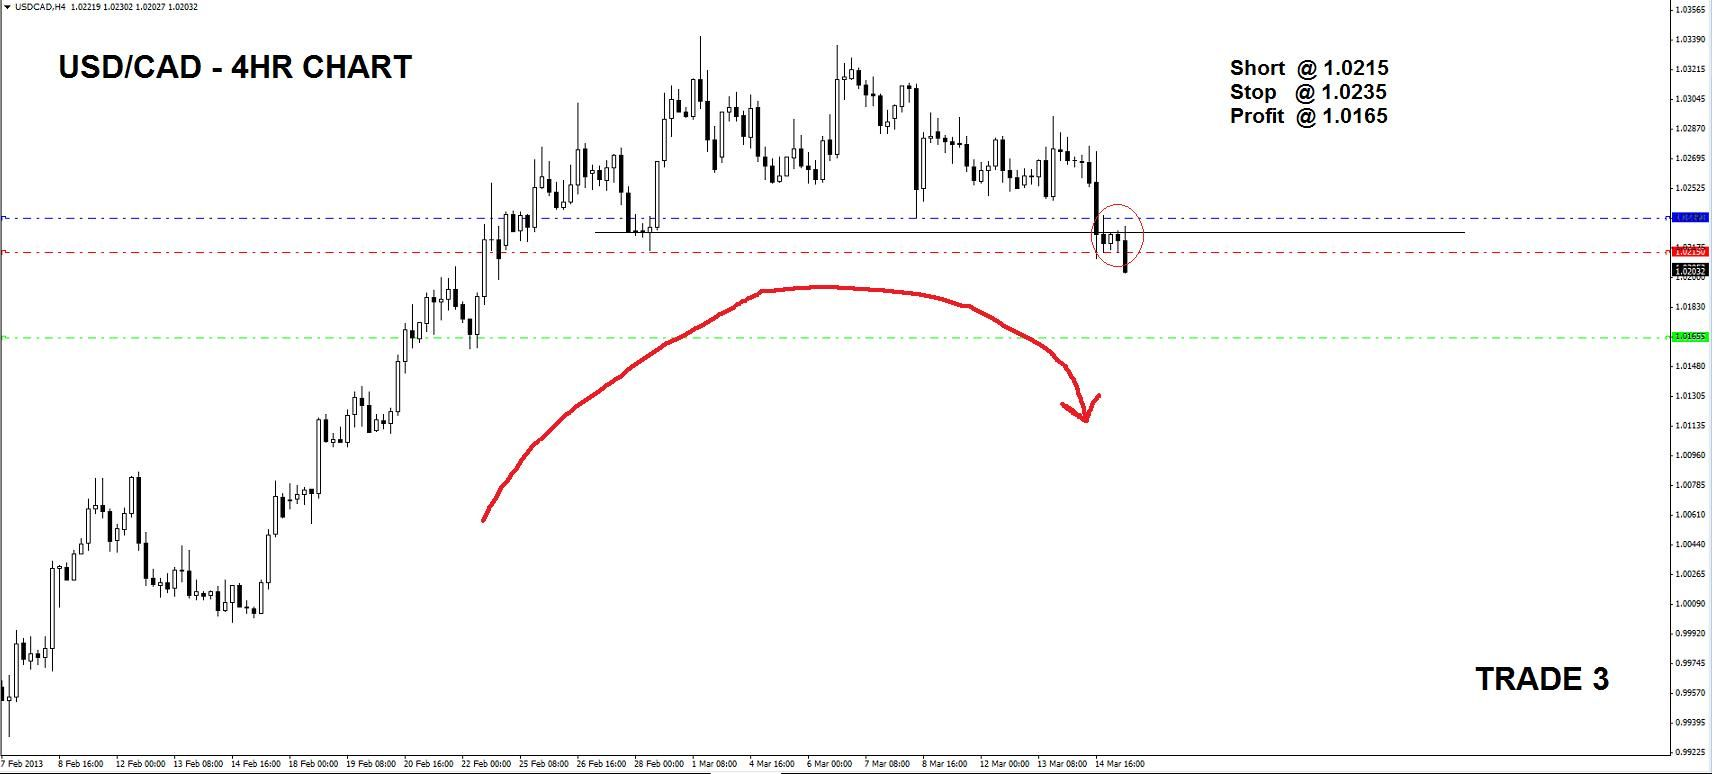 USD/CAD 4HR SHORT 15TH MARCH 2013